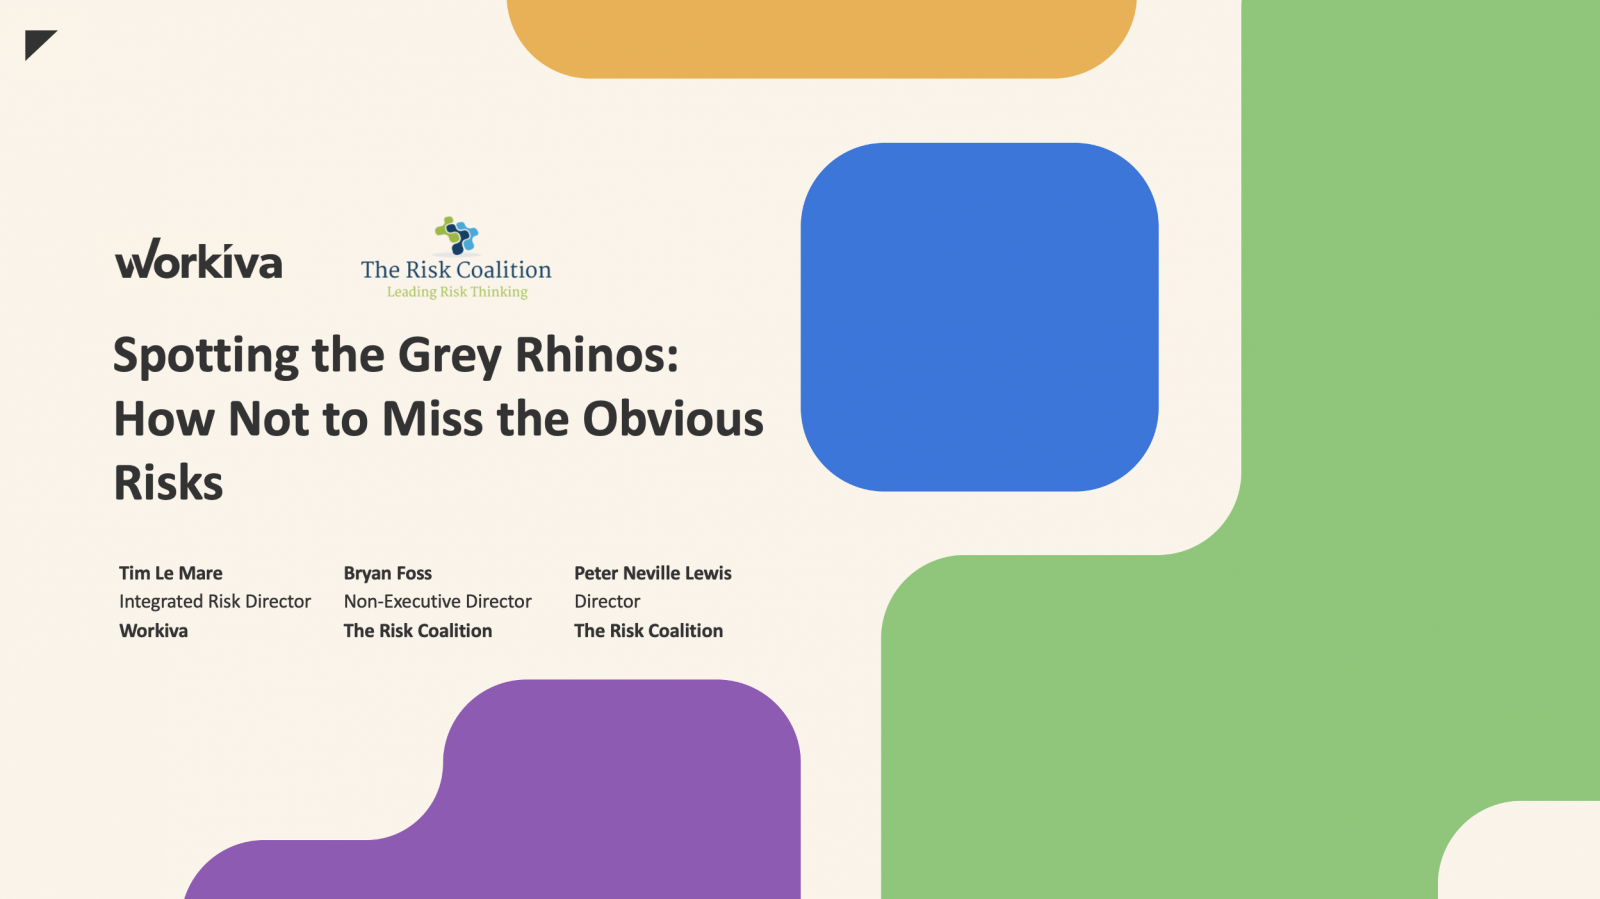 Spotting the Grey Rhinos webinar